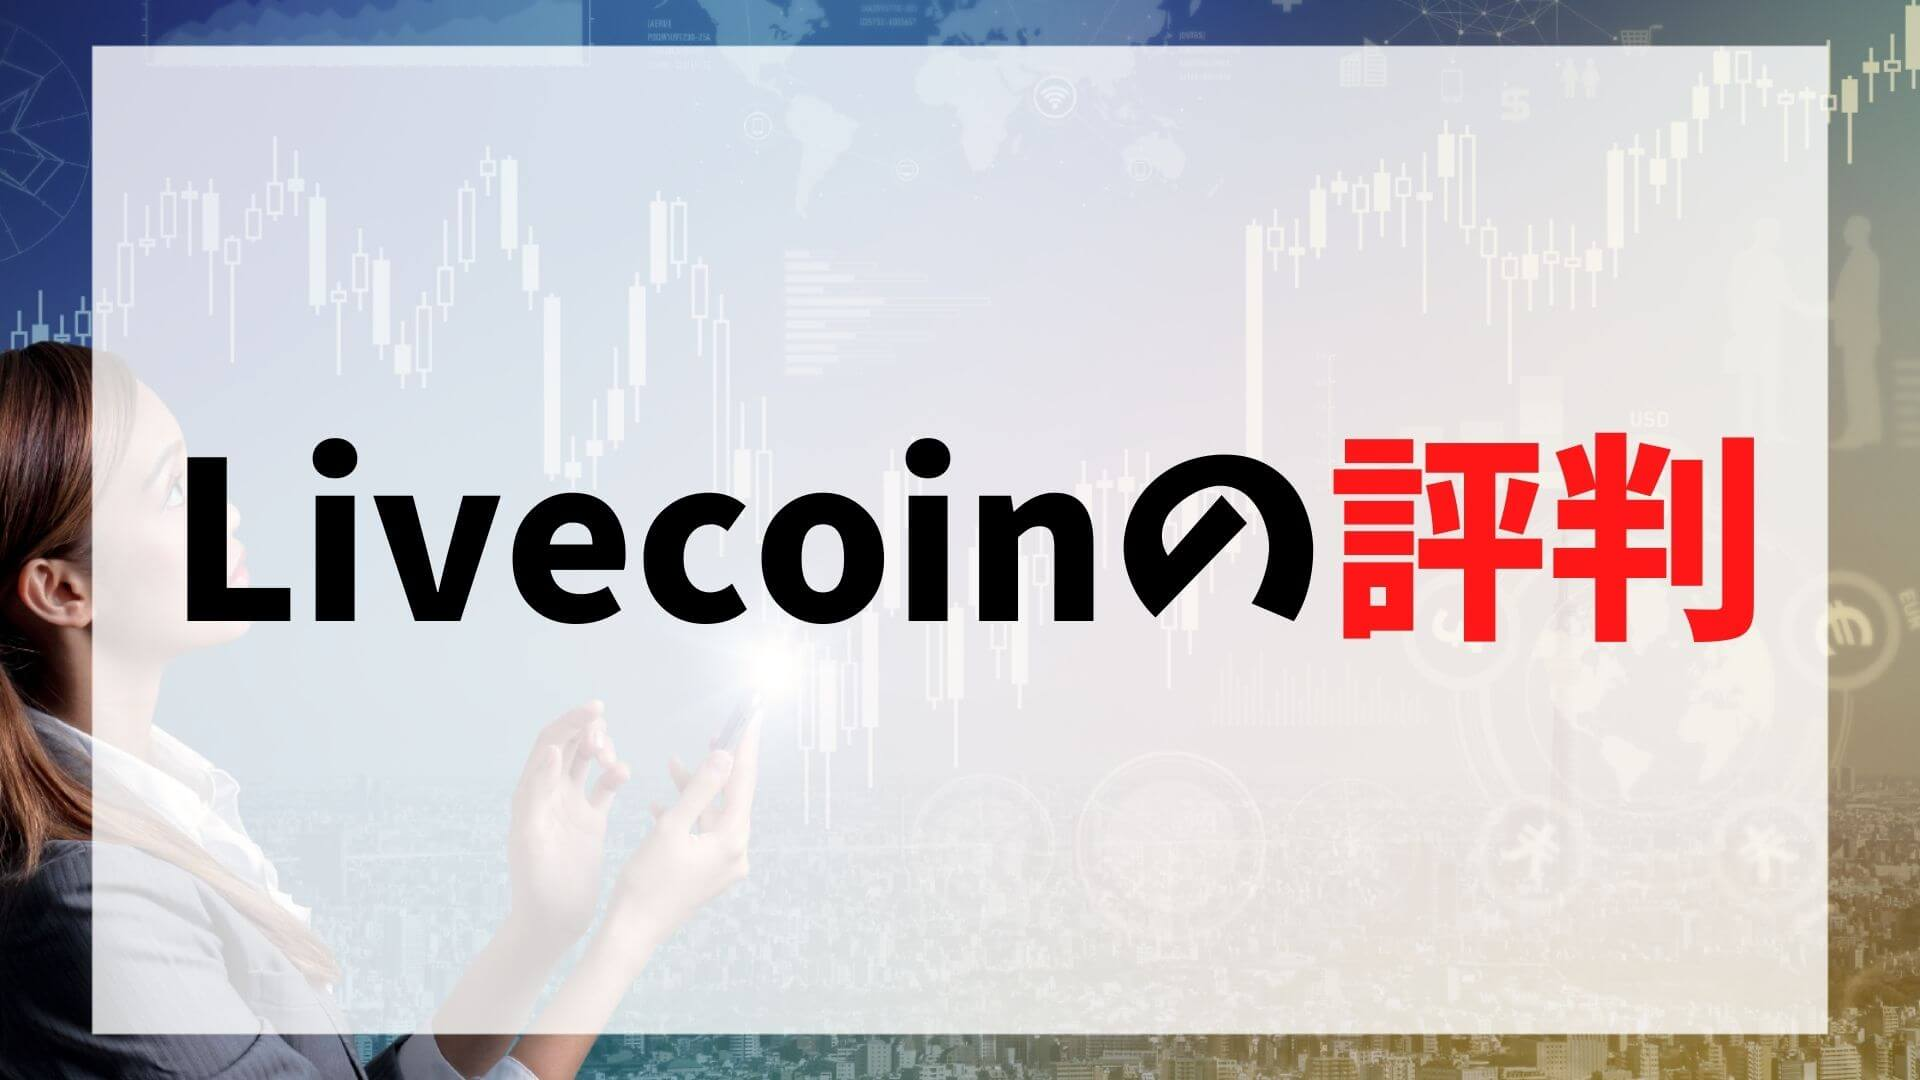 Livecoinの口コミ・評判